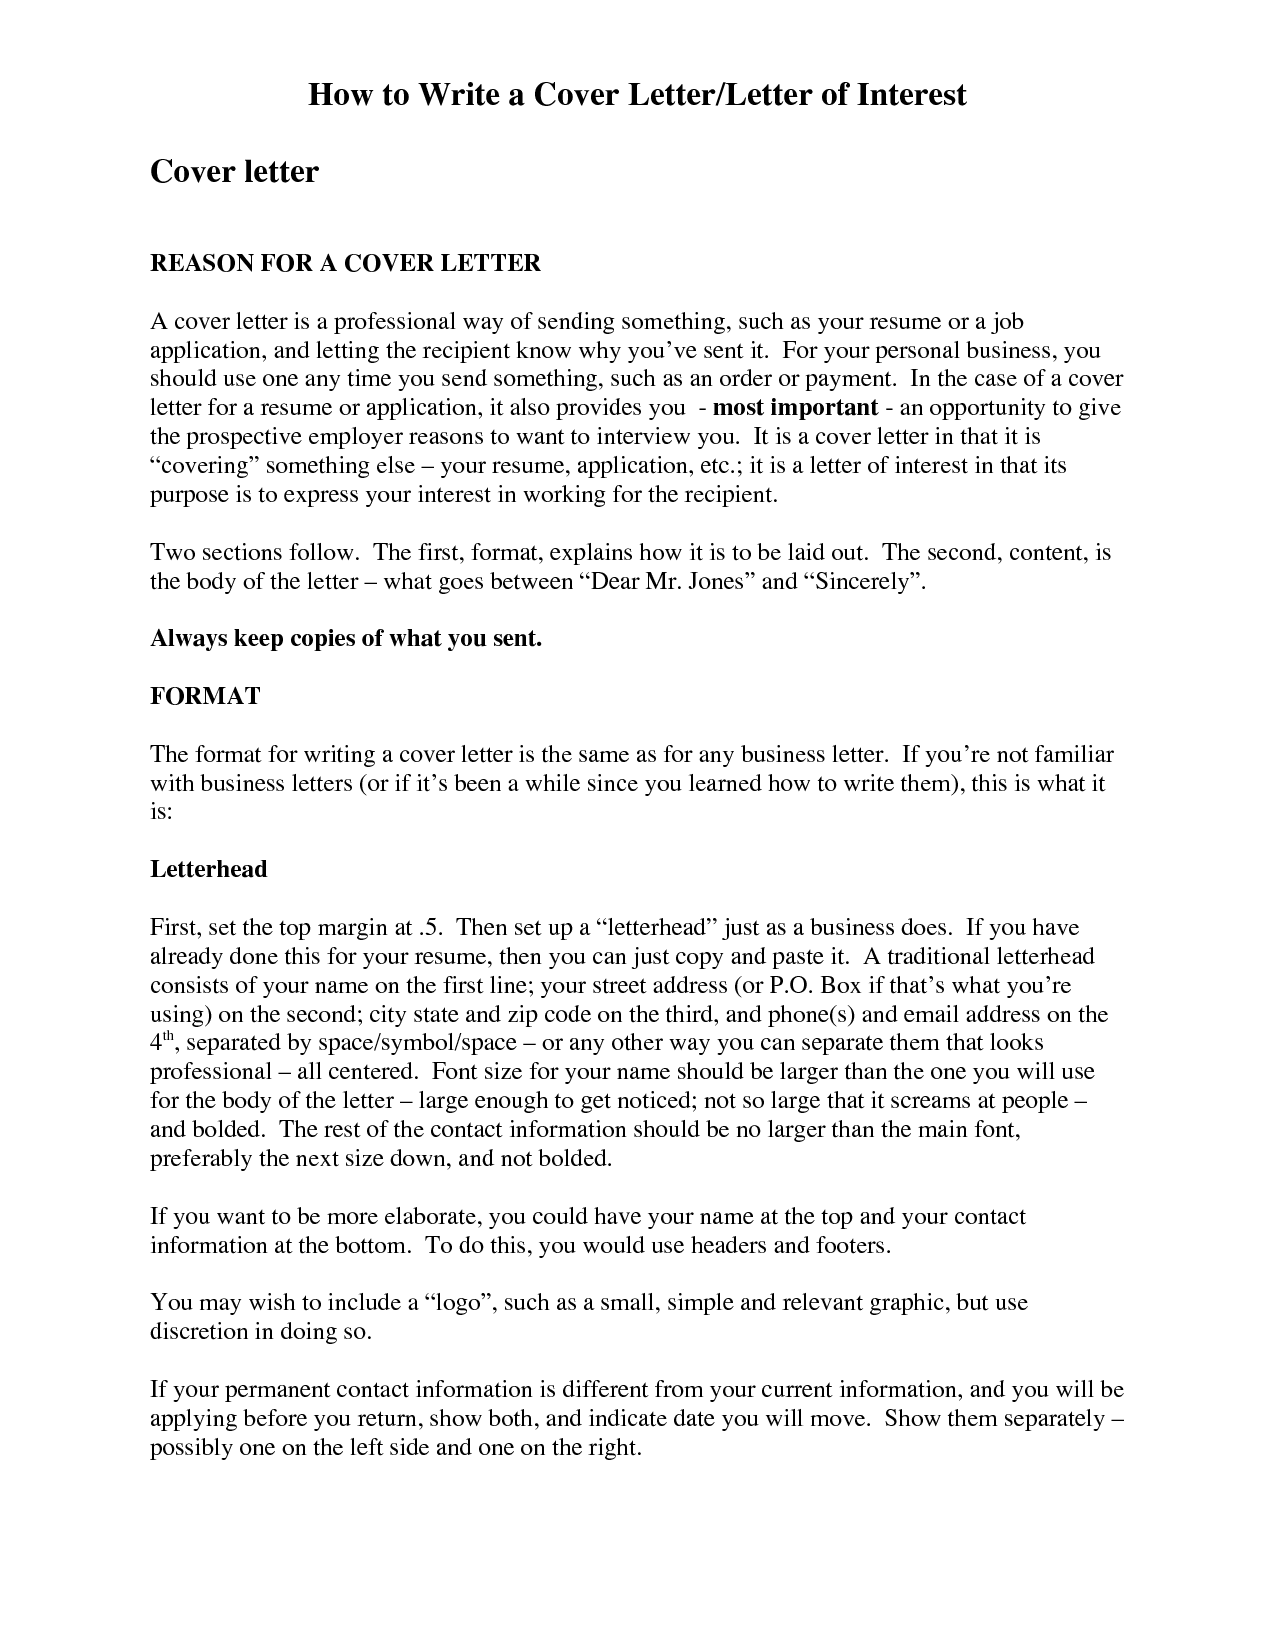 How to write a cover letter of interest example for a job for Howto write a cover letter